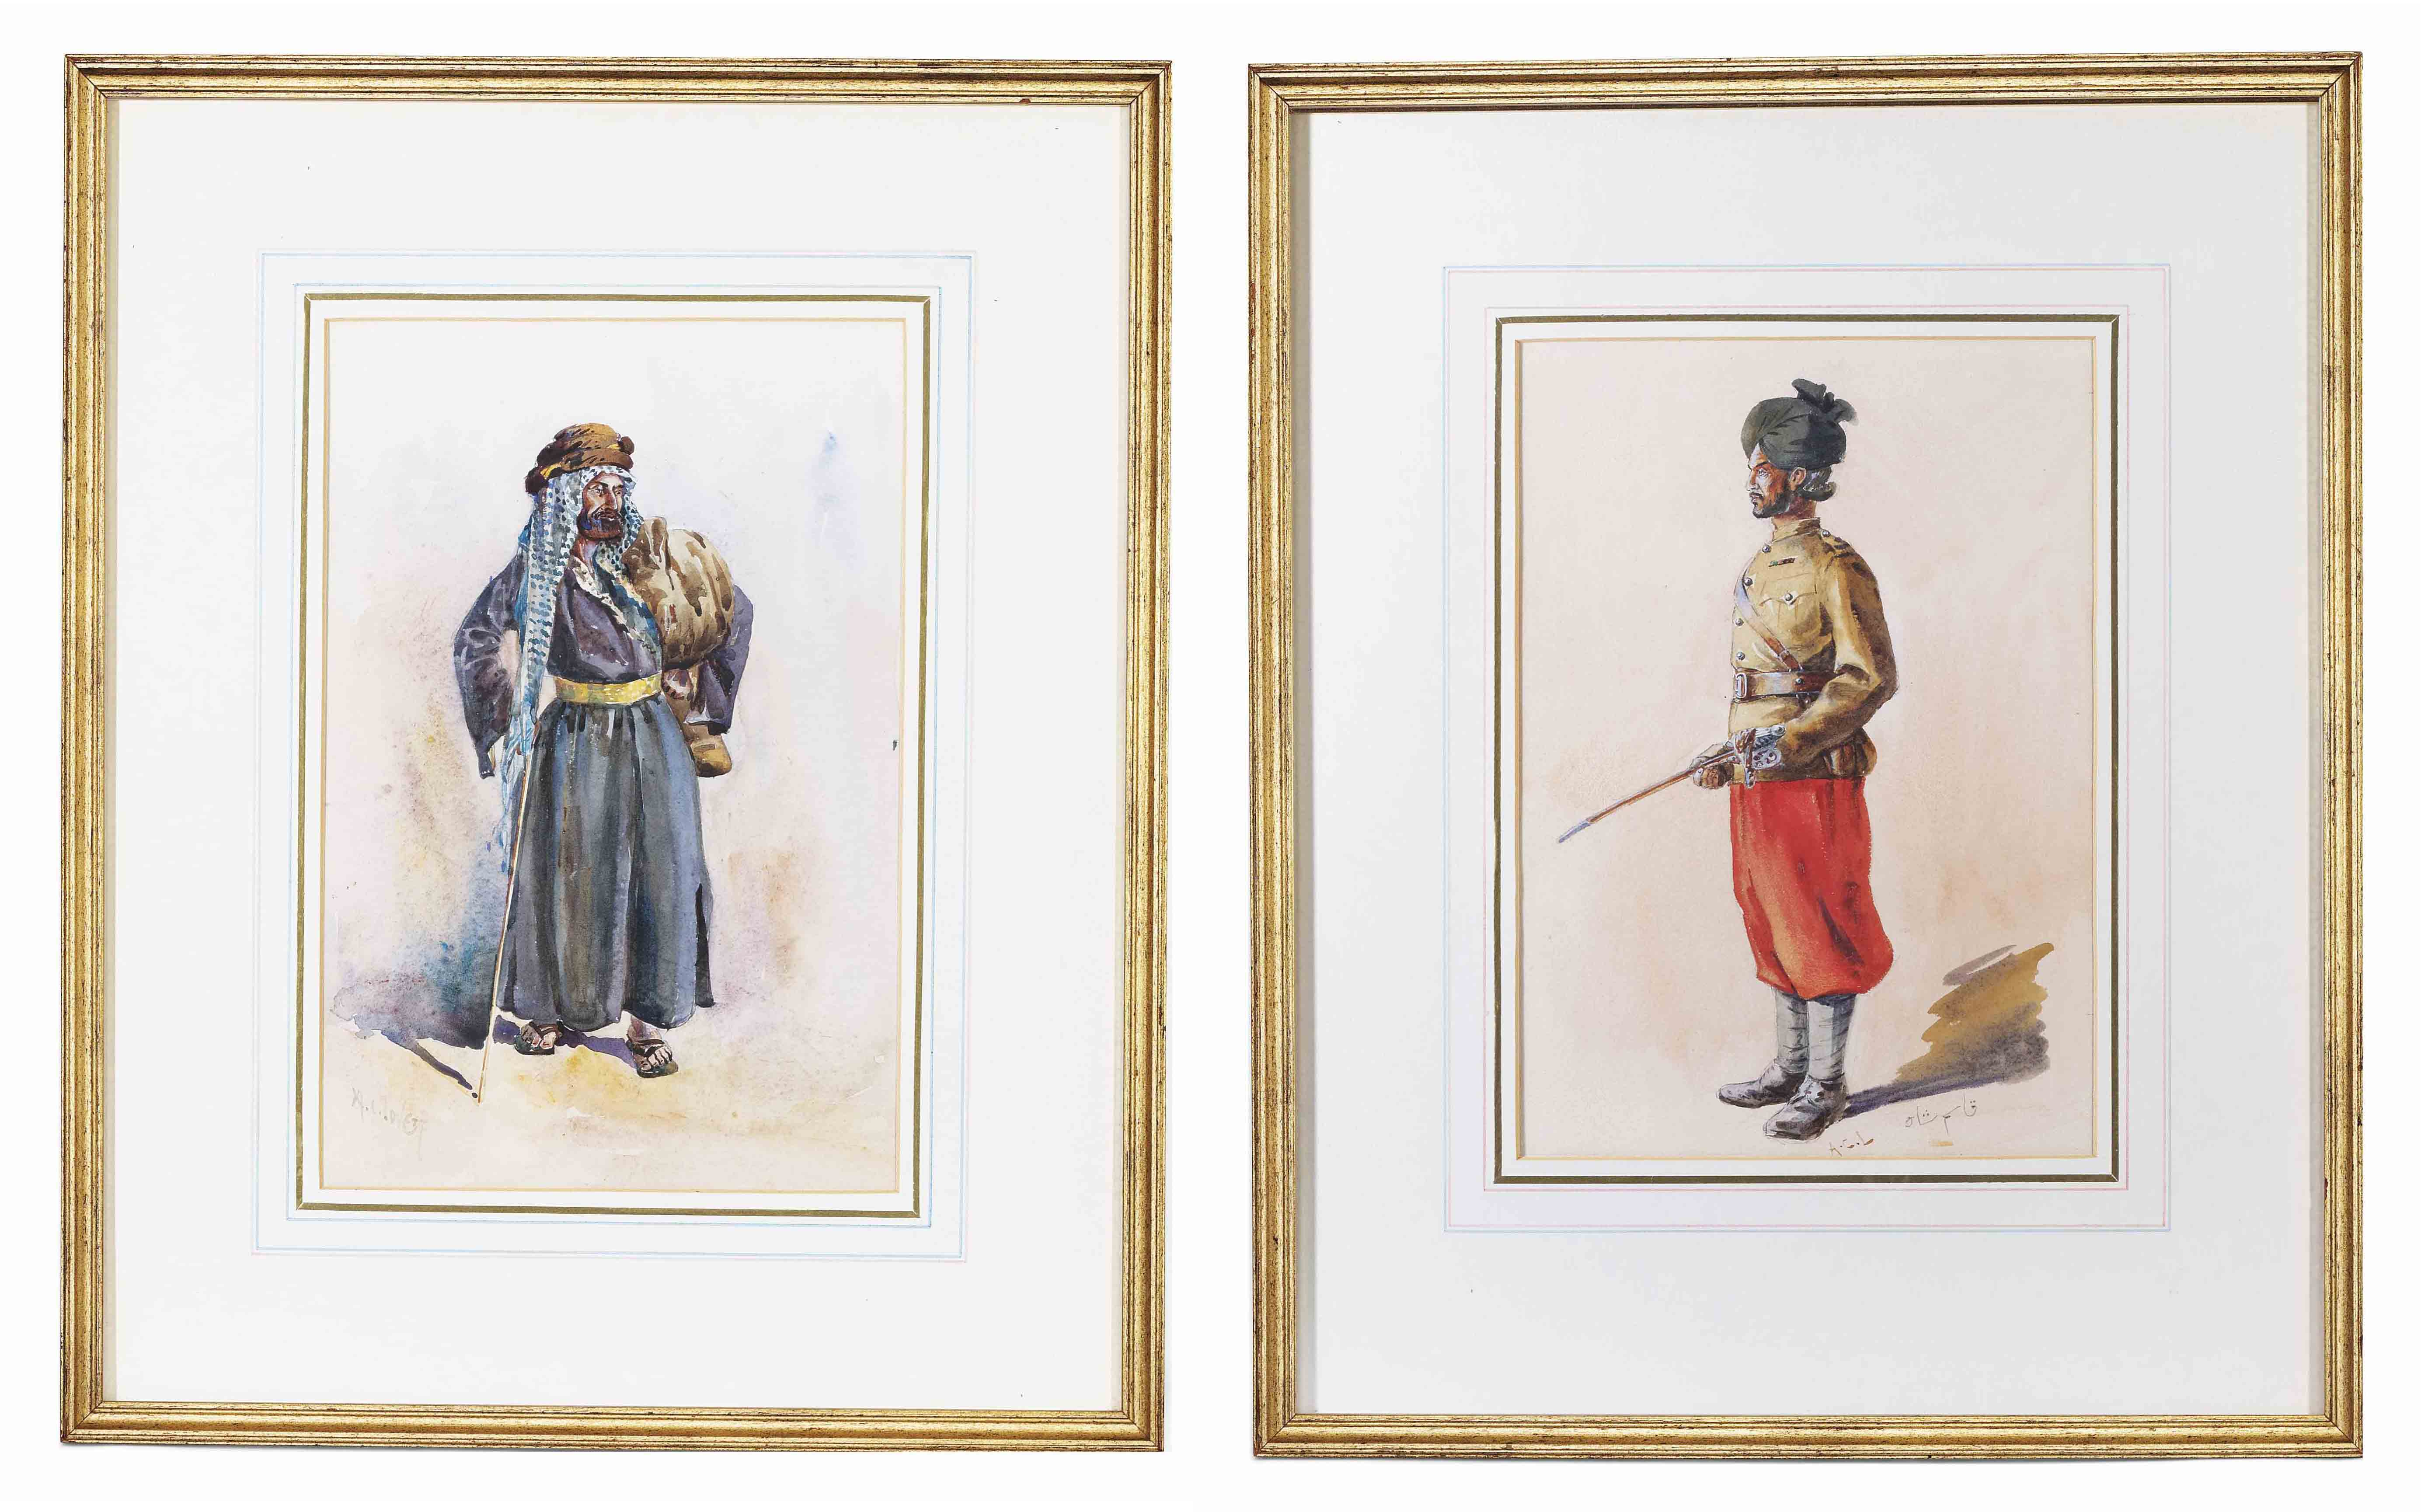 An Indian beggarman; and An Indian soldier in a turban